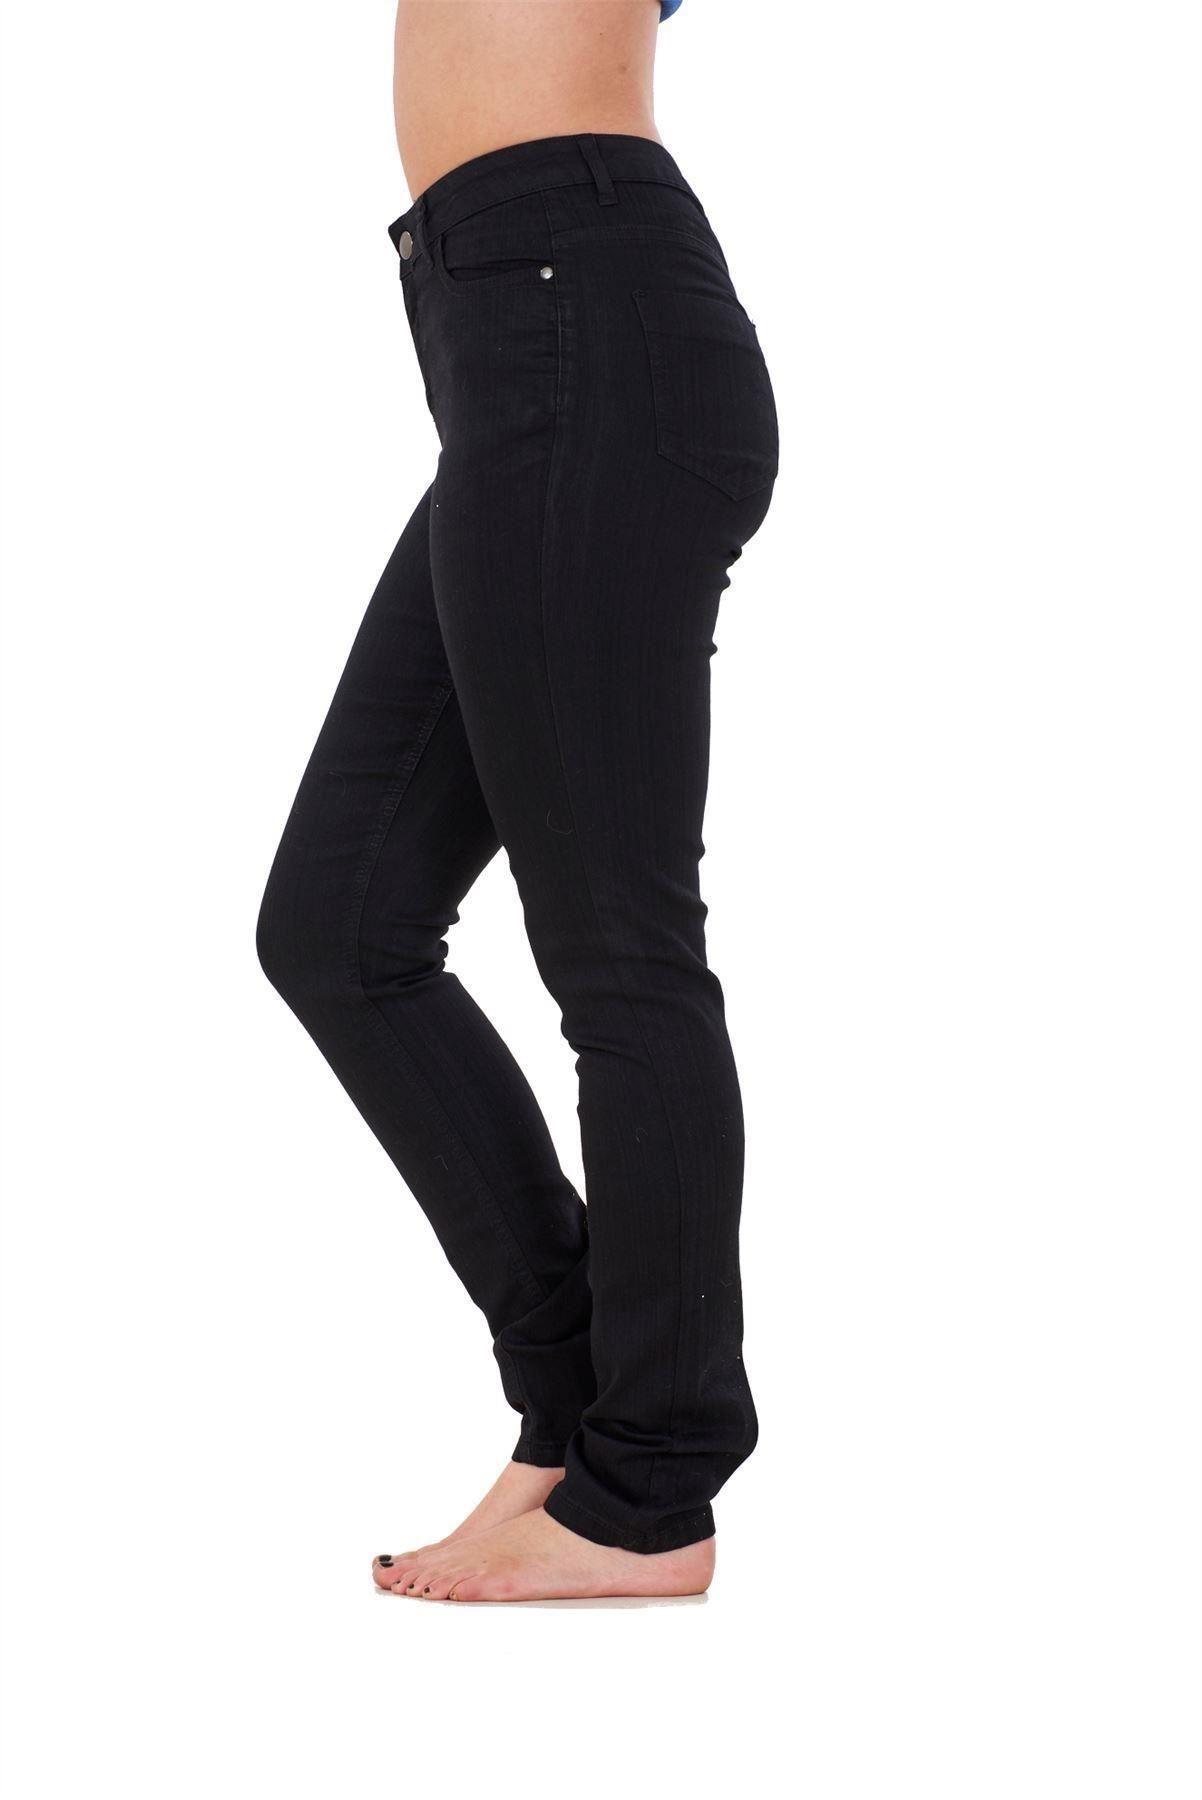 Ladies-Stretch-Jeans-Denim-cotton-Zip-fly-High-Waisted-Slim-Fit-Trousers-Pants thumbnail 3